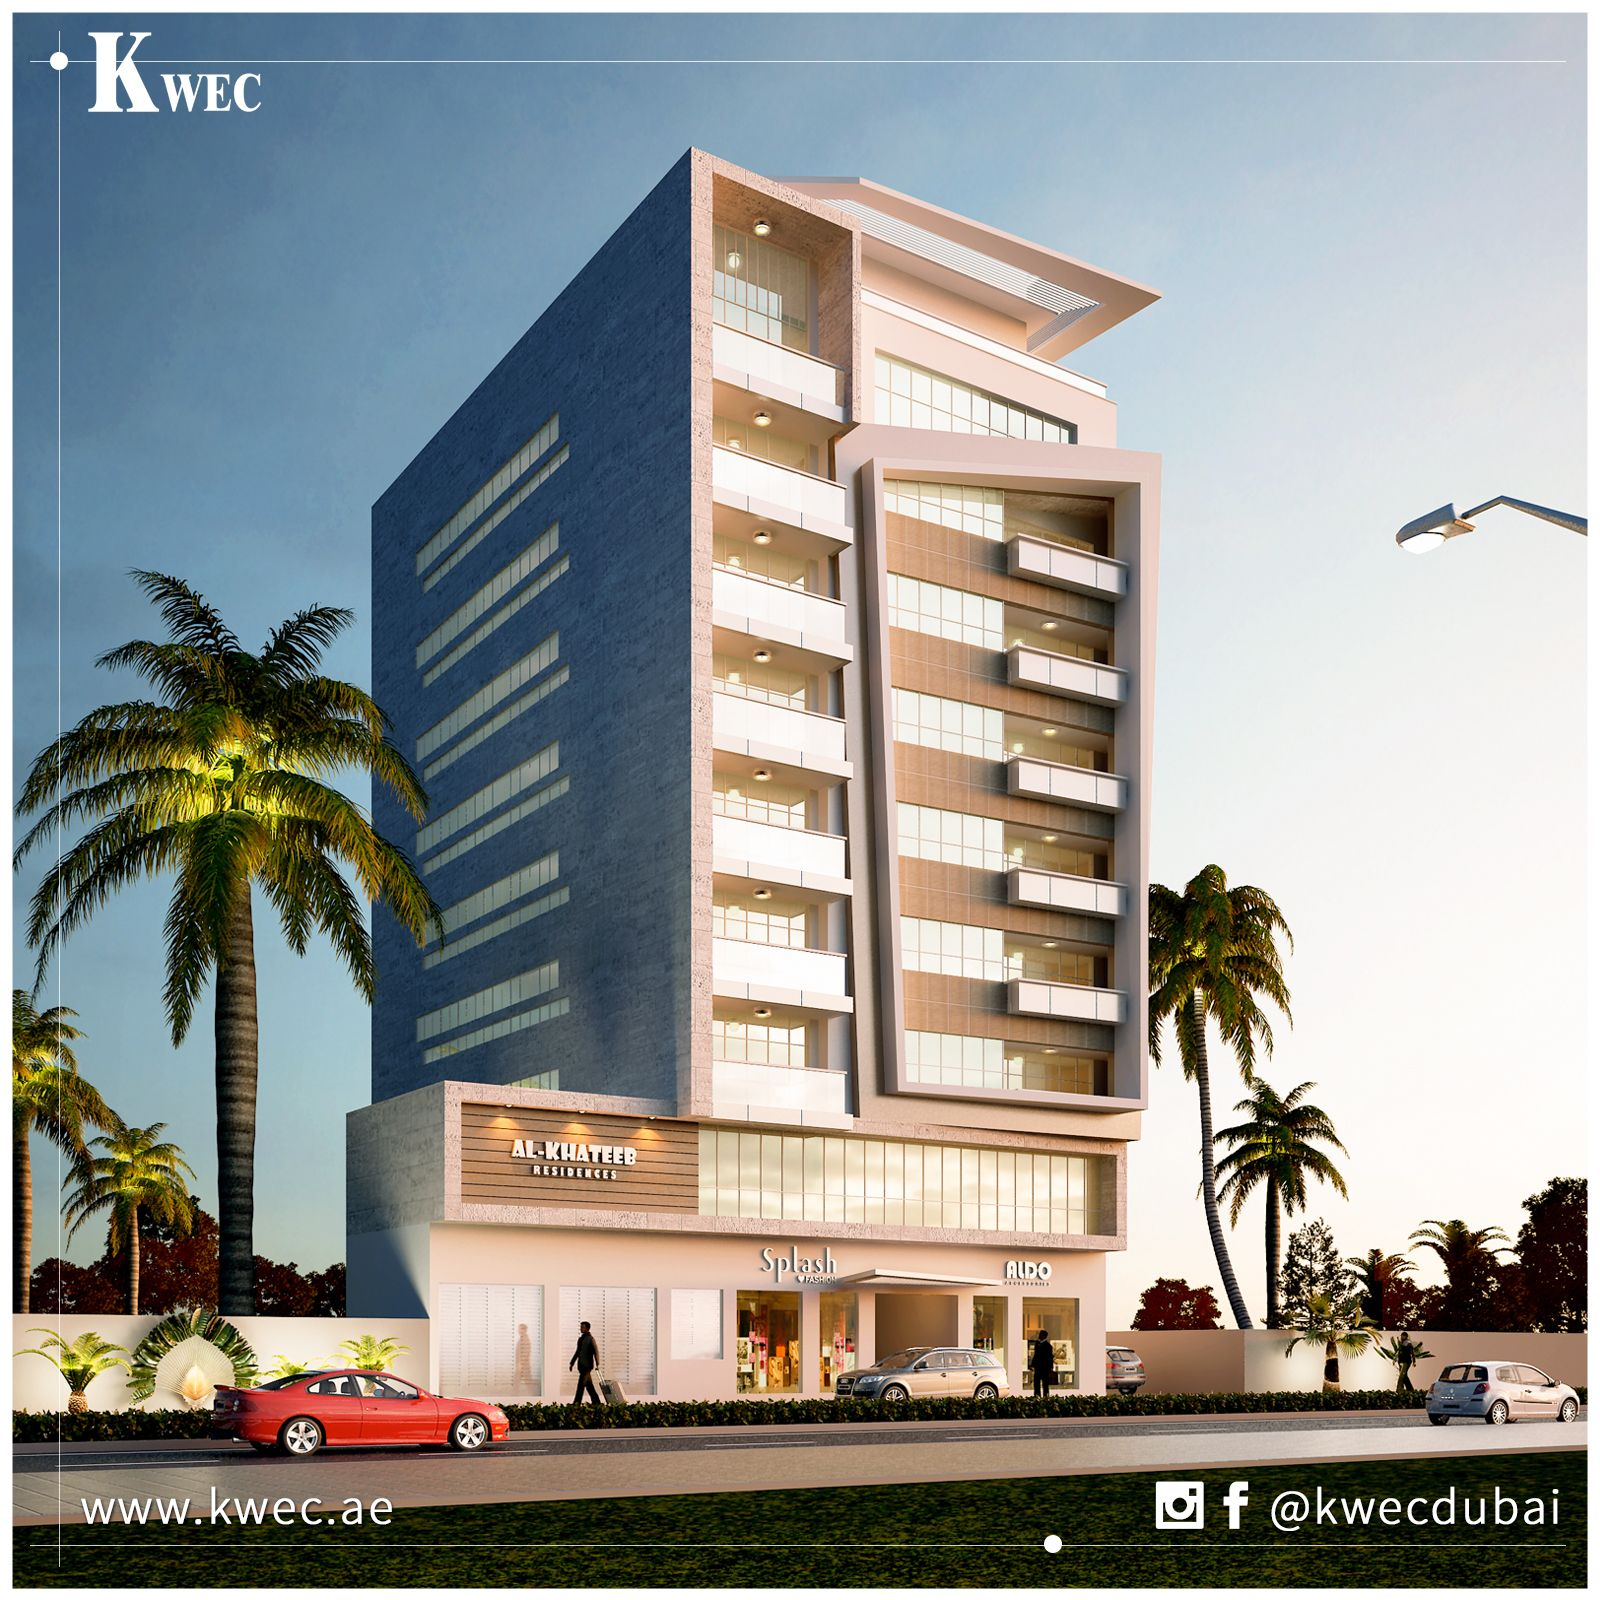 Luxury commercial and residential building in muraqqabat dubai modern contemporary design by kwec team